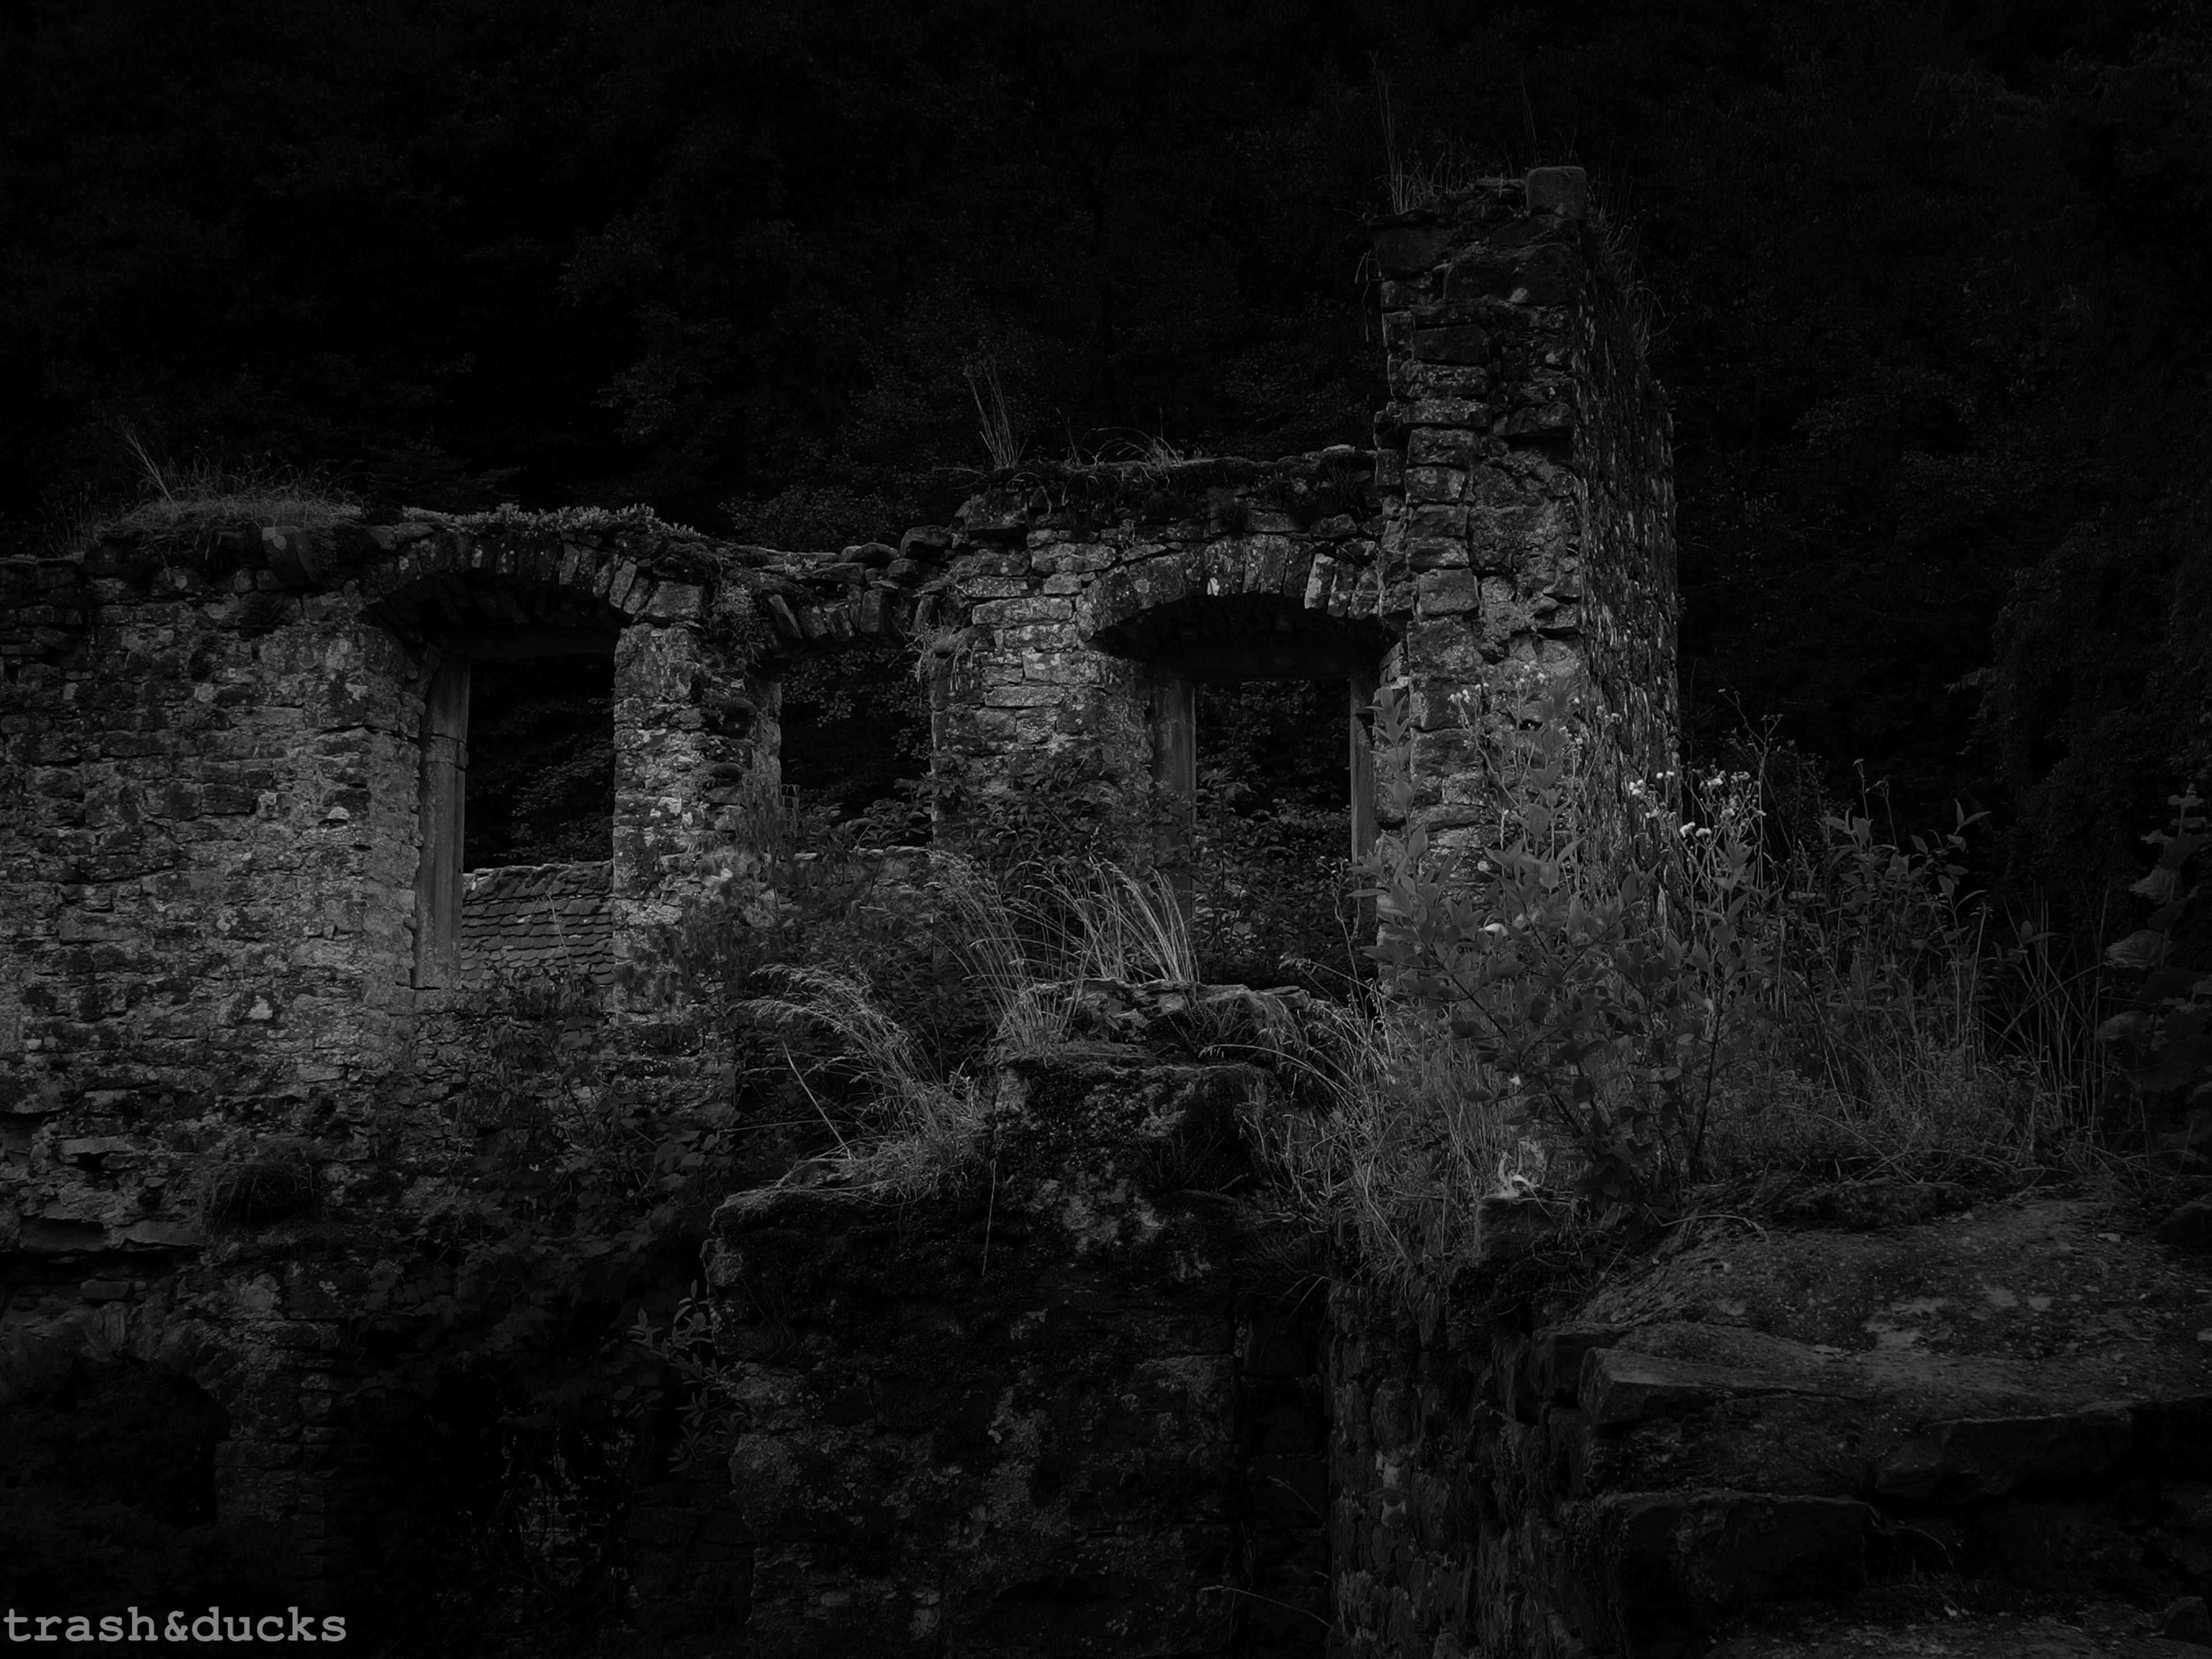 architecture, built structure, building exterior, old, tree, abandoned, damaged, low angle view, weathered, night, run-down, stone wall, house, obsolete, window, wall - building feature, outdoors, deterioration, no people, brick wall